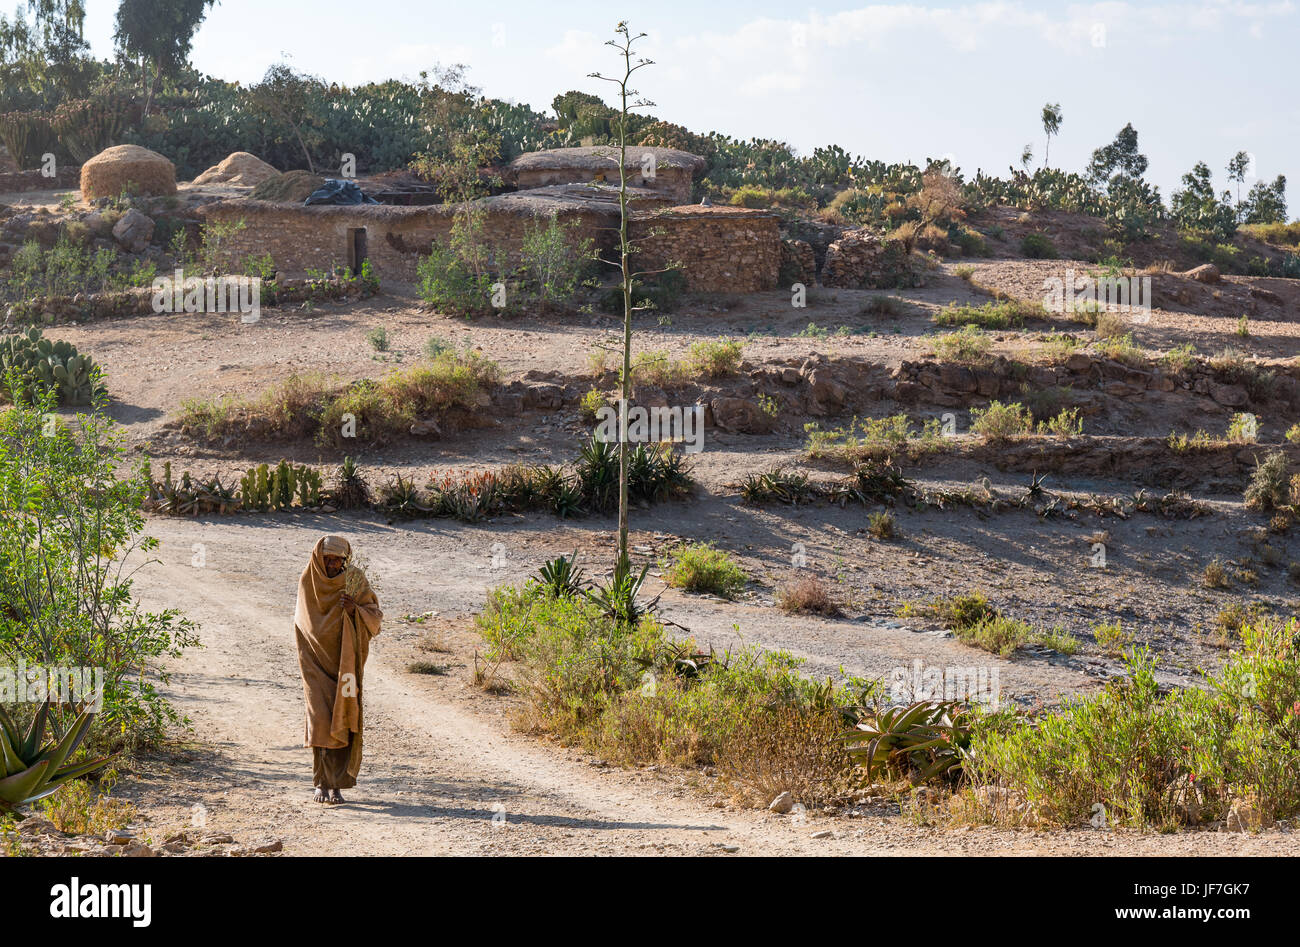 Ethiopia, Adigrat, farmer houses in the outskirts of the village - Stock Image